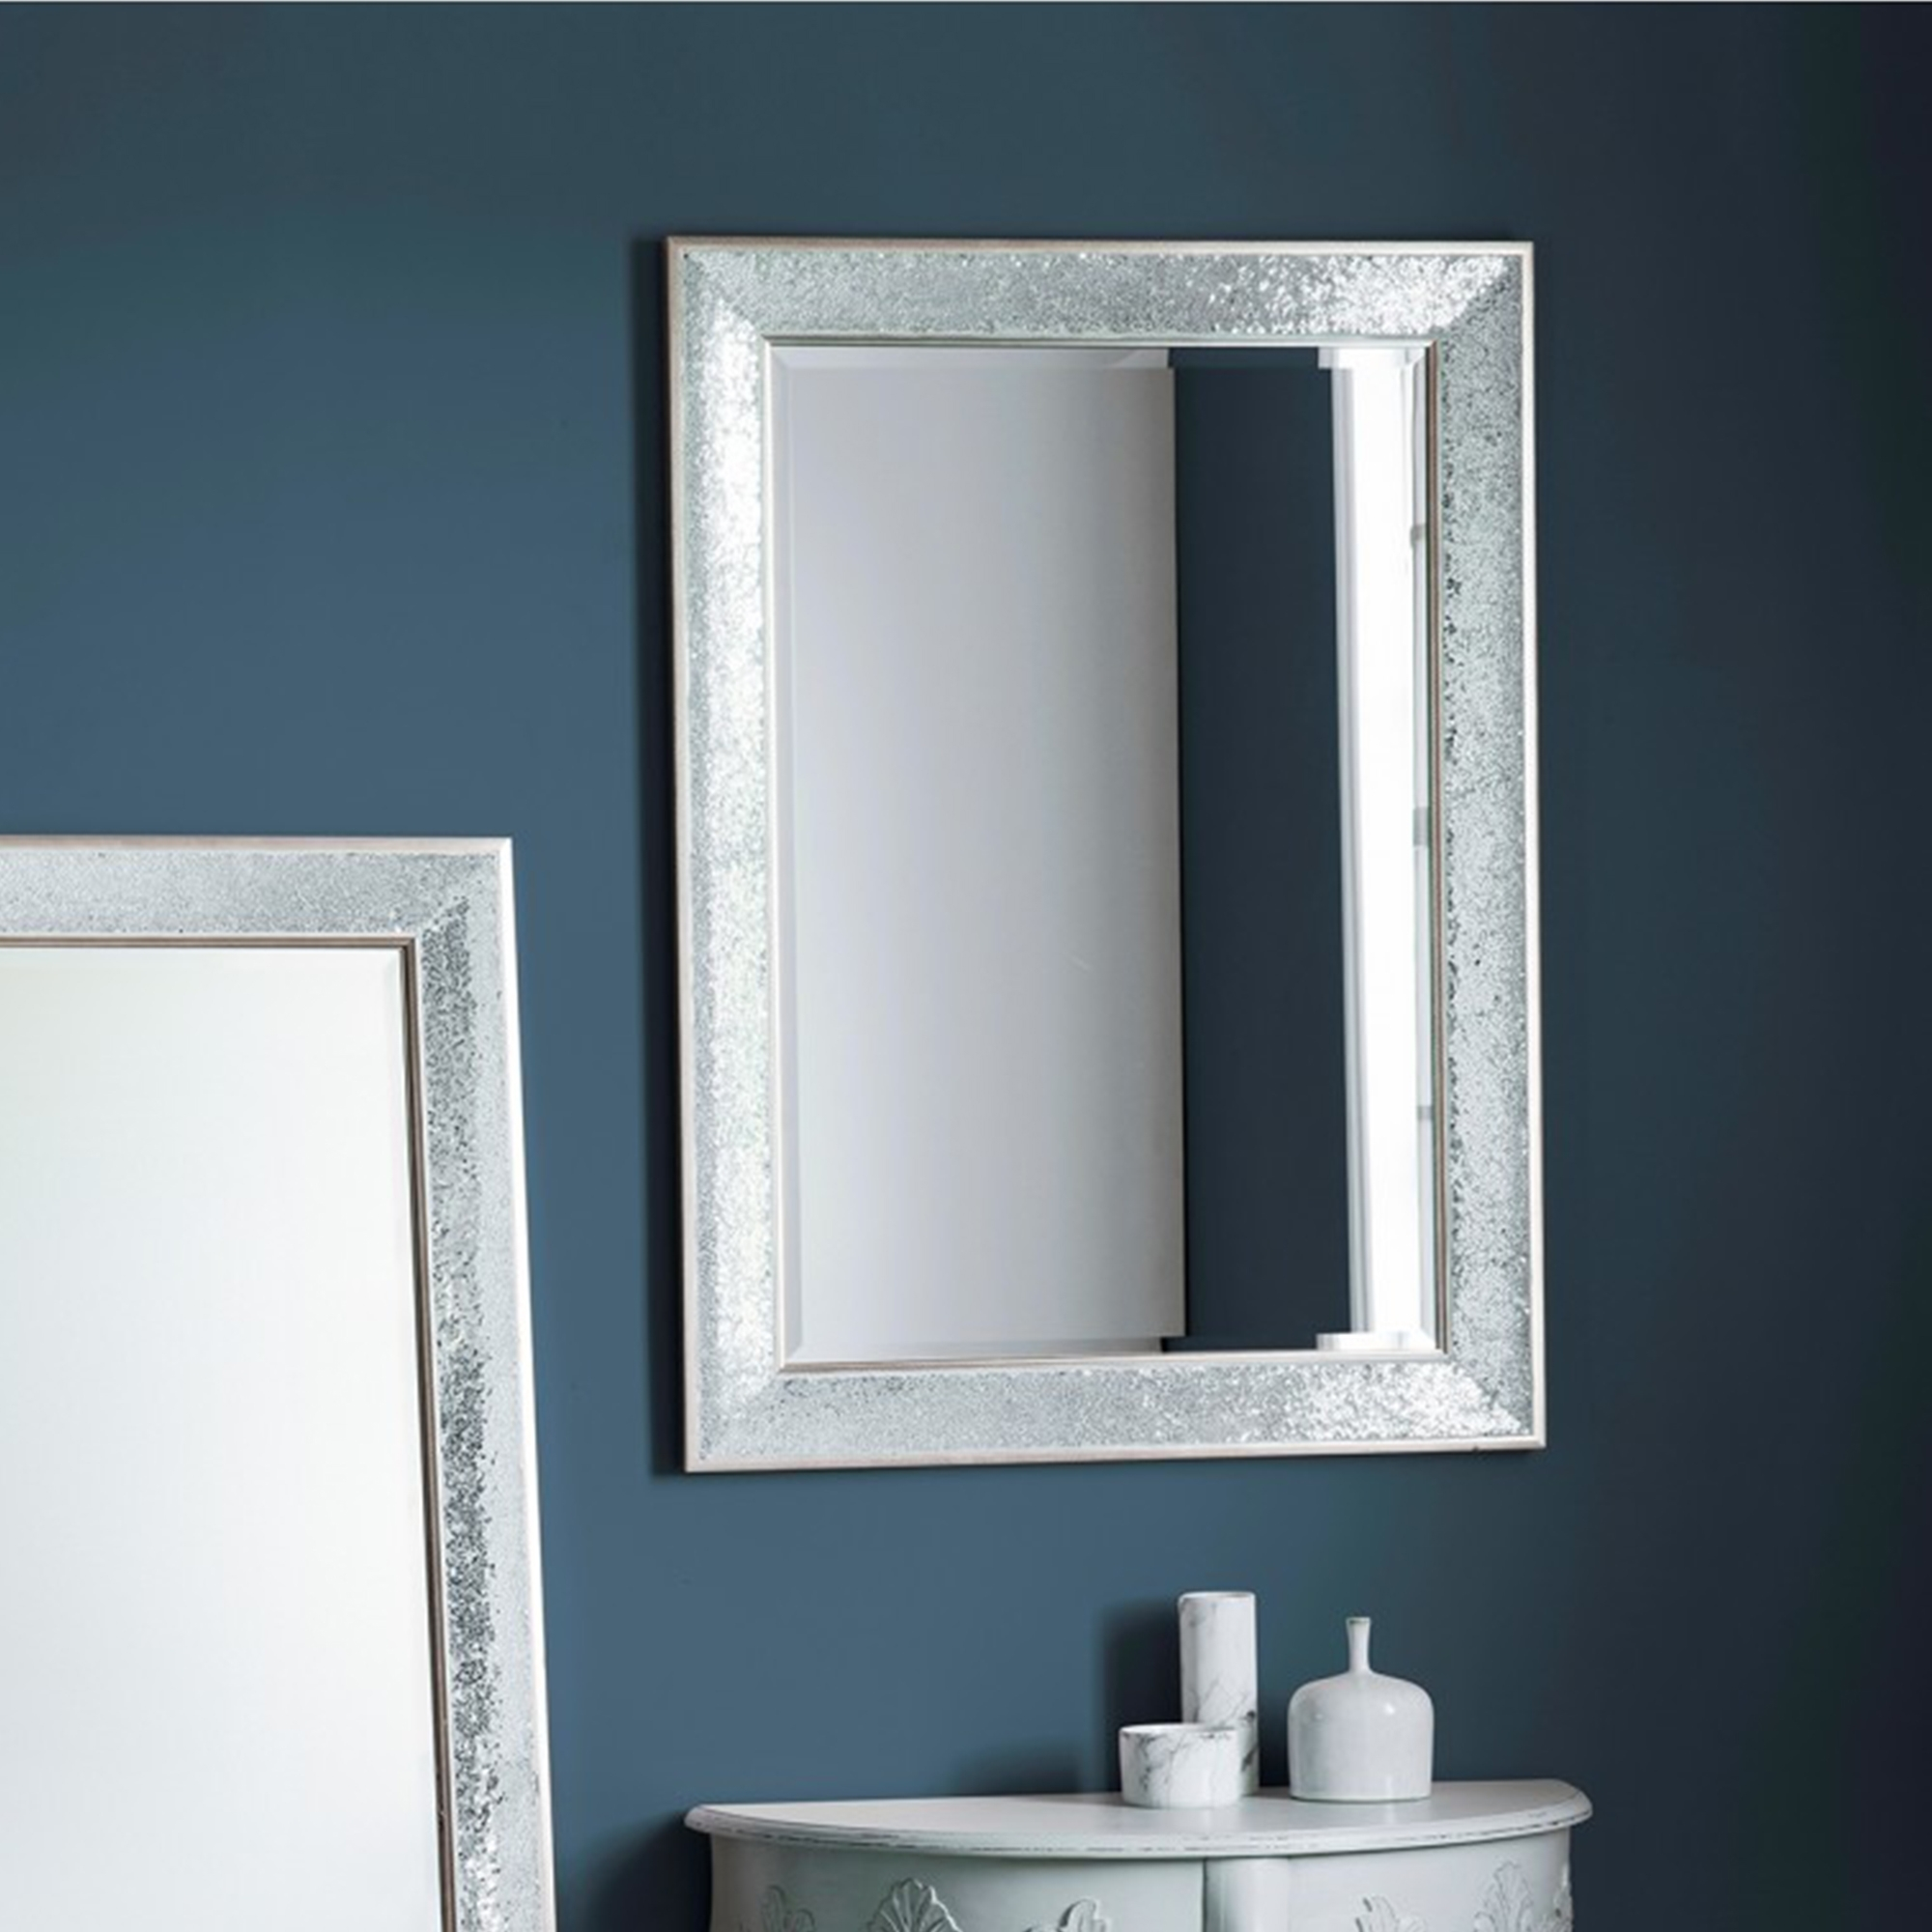 contemporary mirrors  contemporary wall mirrors  modern mirrors - chester mirror